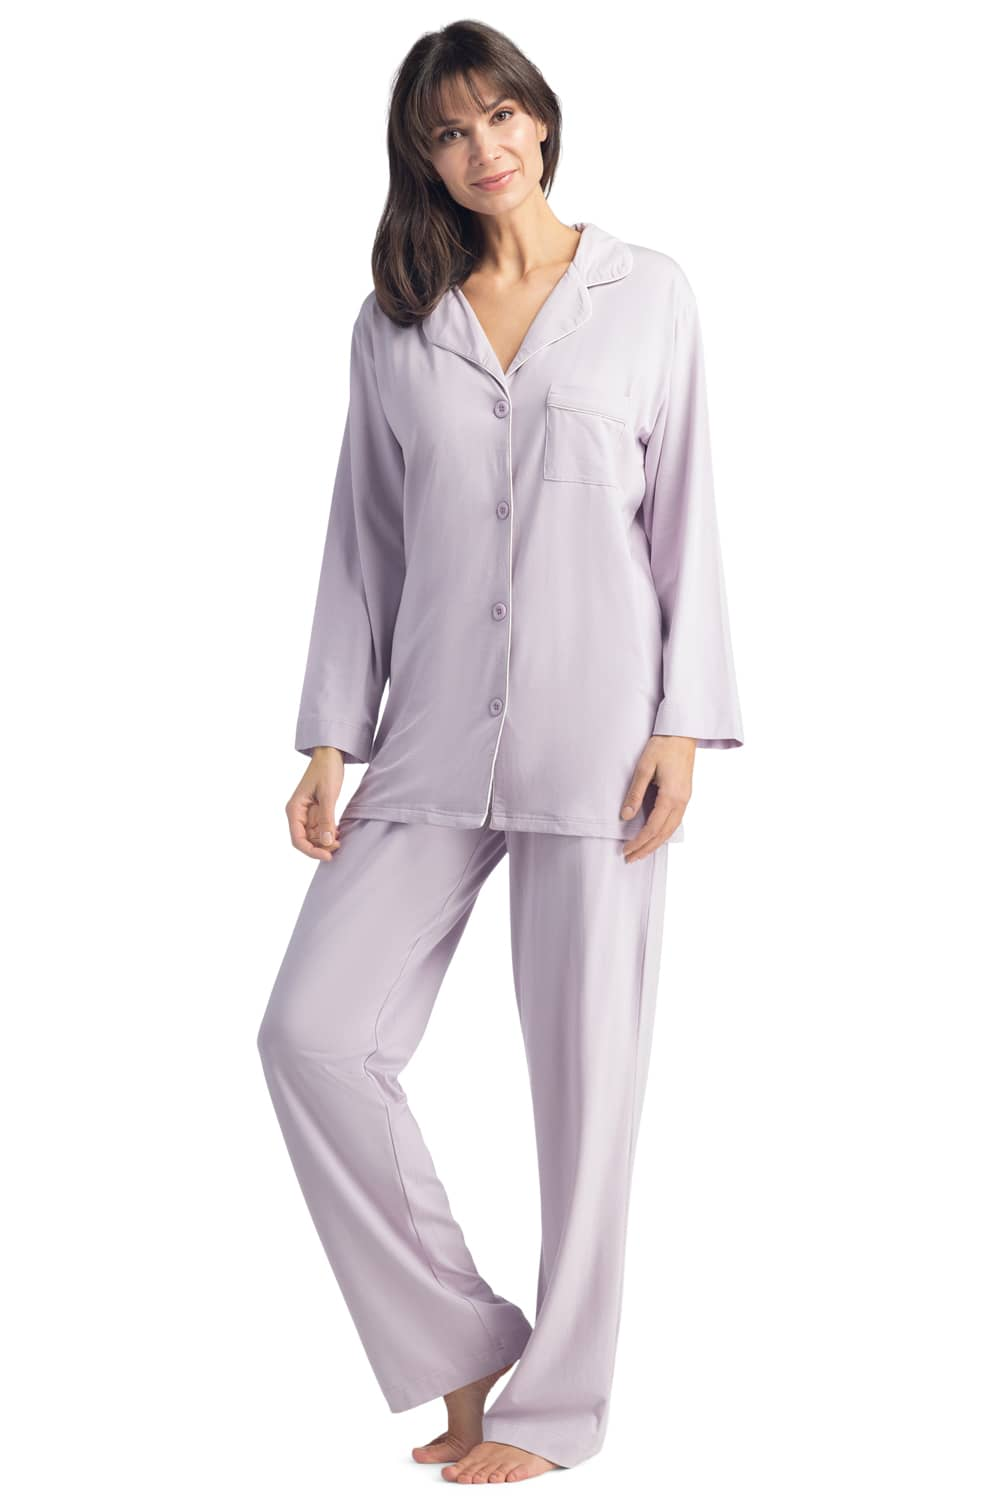 Women's Original EcoFabric™ Full Length Pajama Set with Gift Box